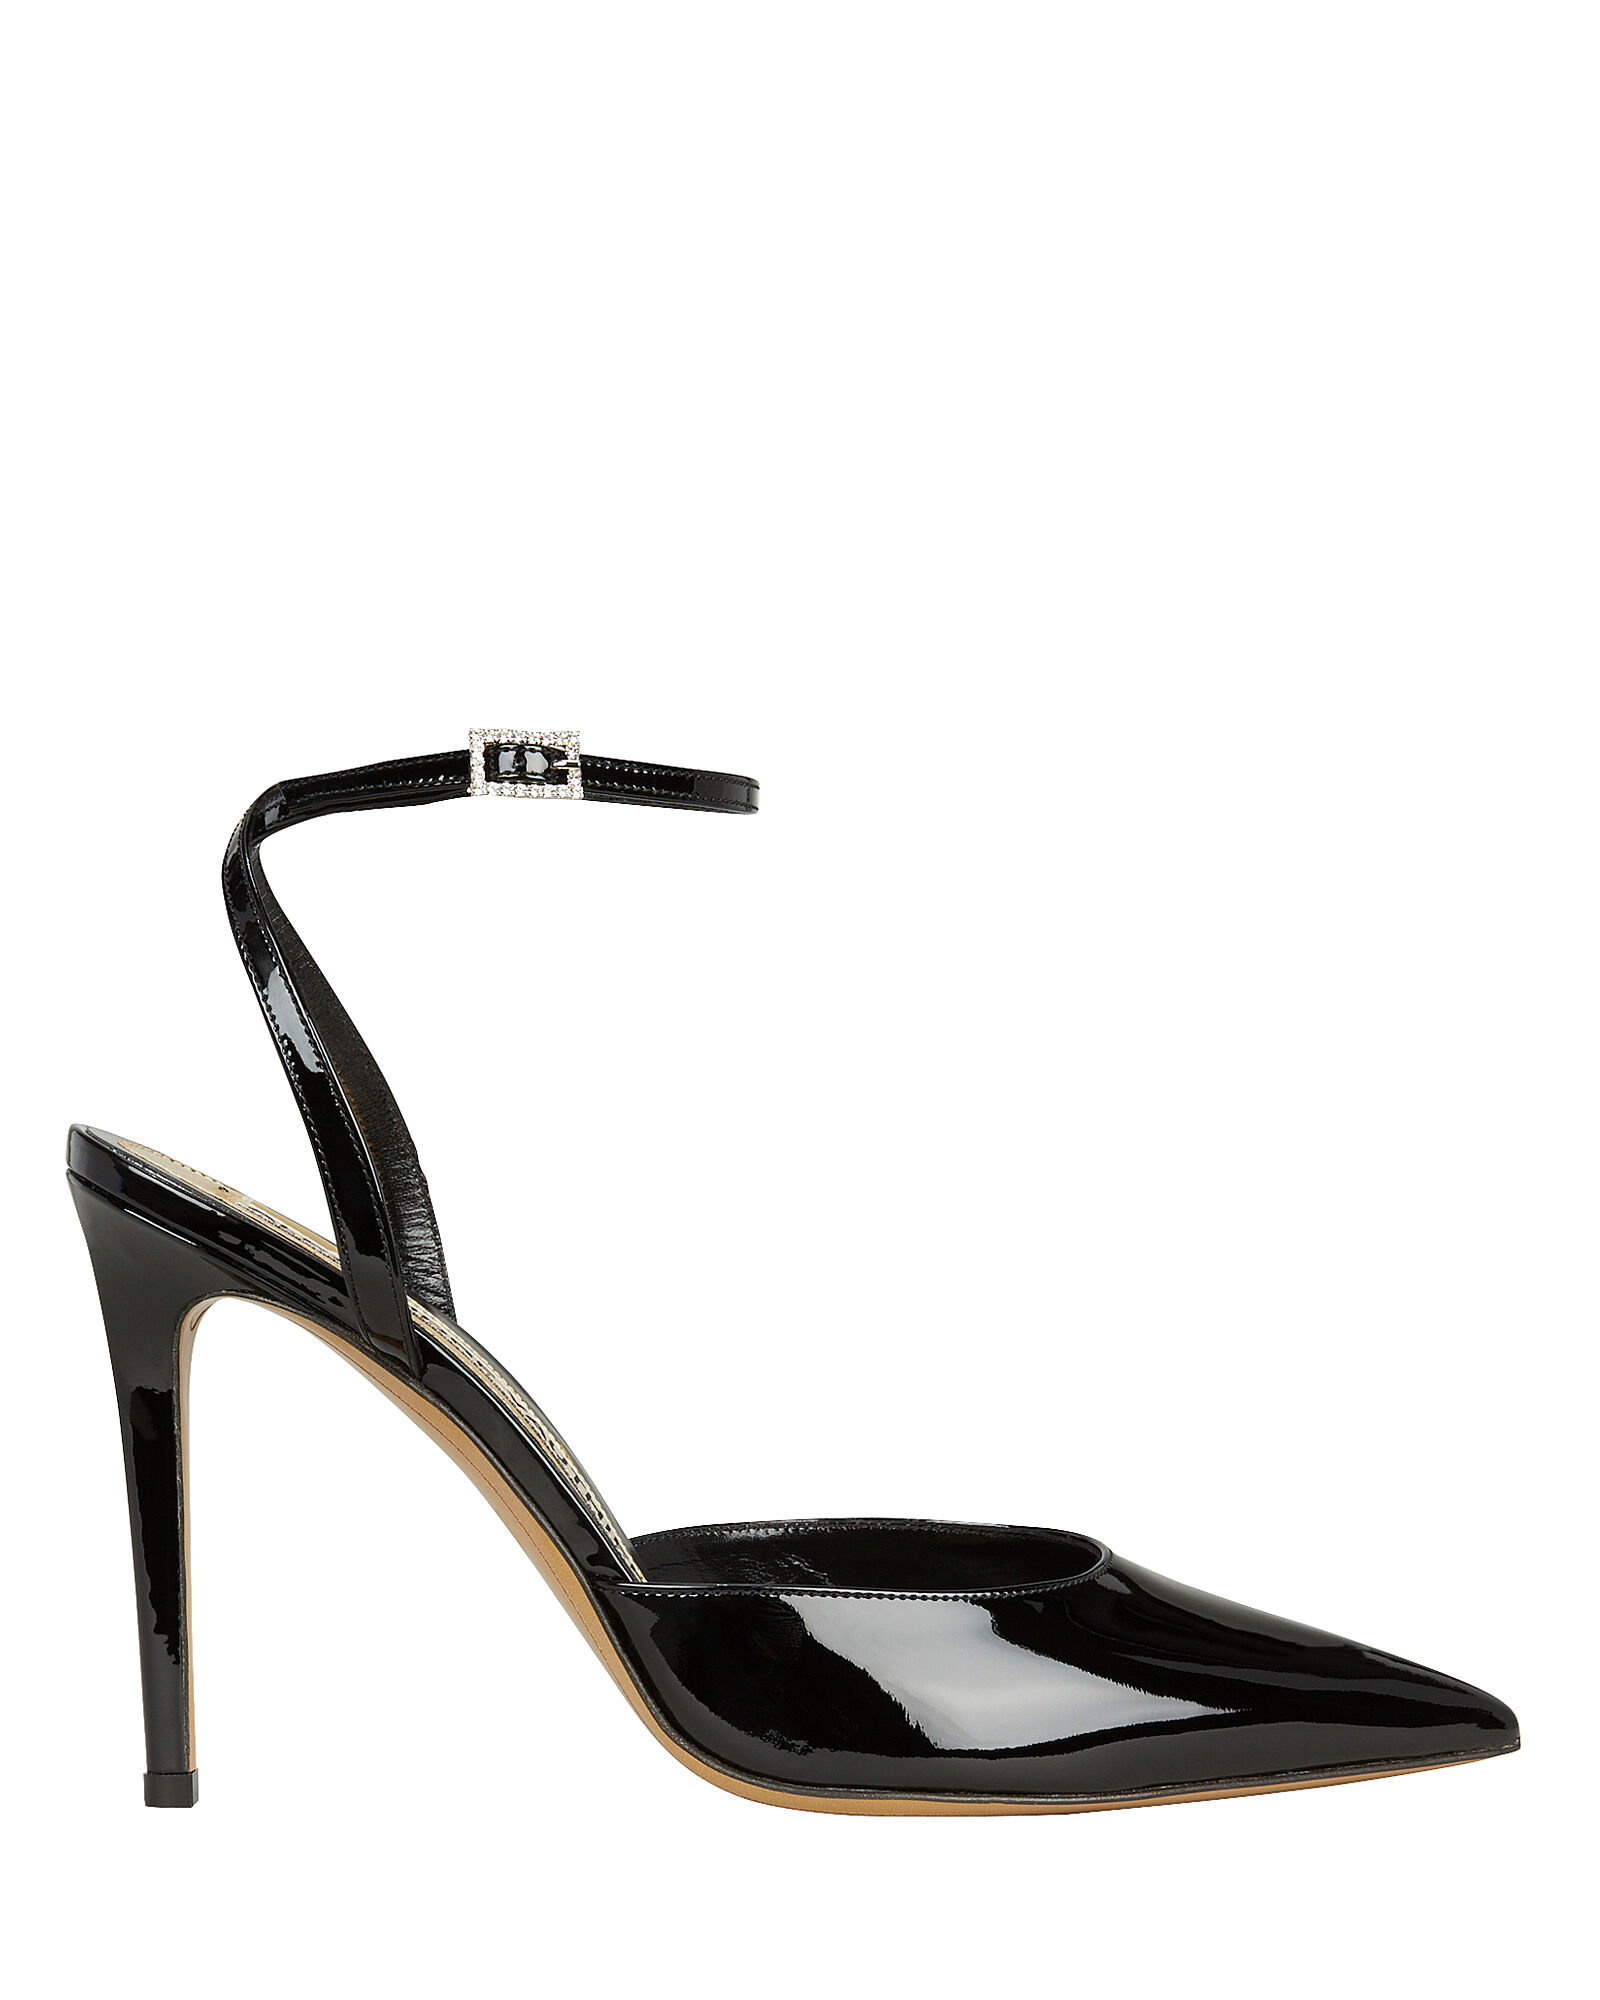 Carine Patent Leather Pumps, BLACK, hi-res